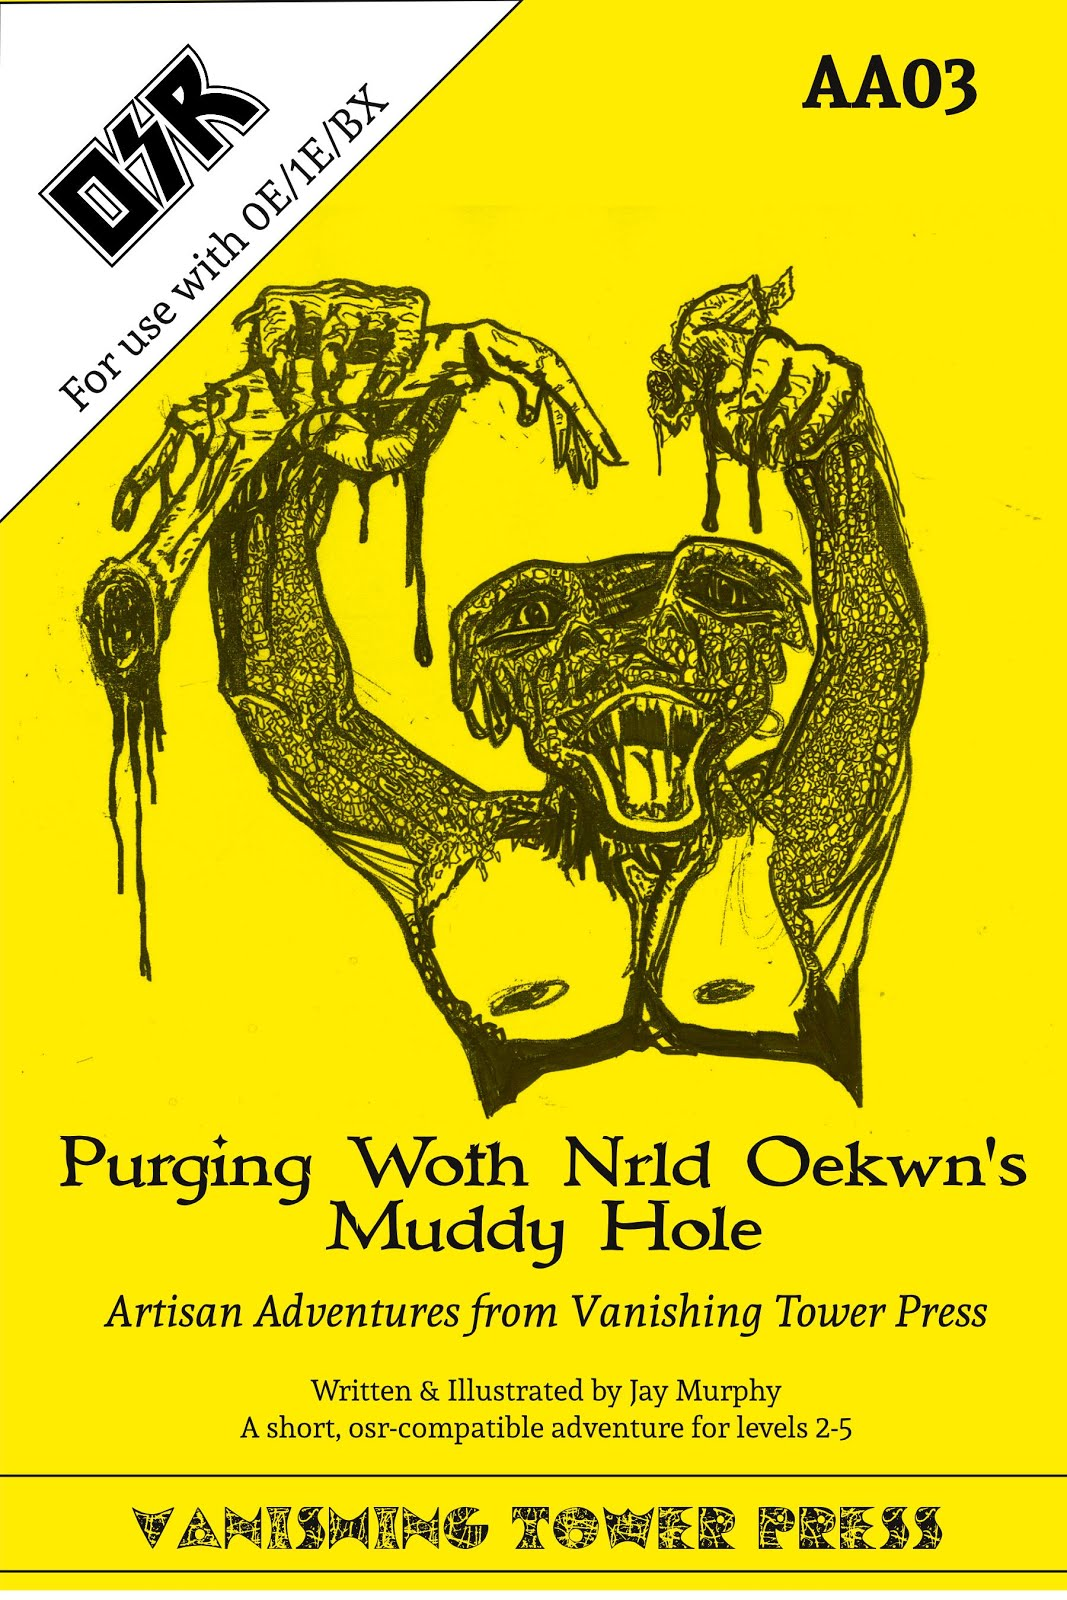 AA03 Purging Woth nrld Oekwyn's Muddy Hole now On Sale!